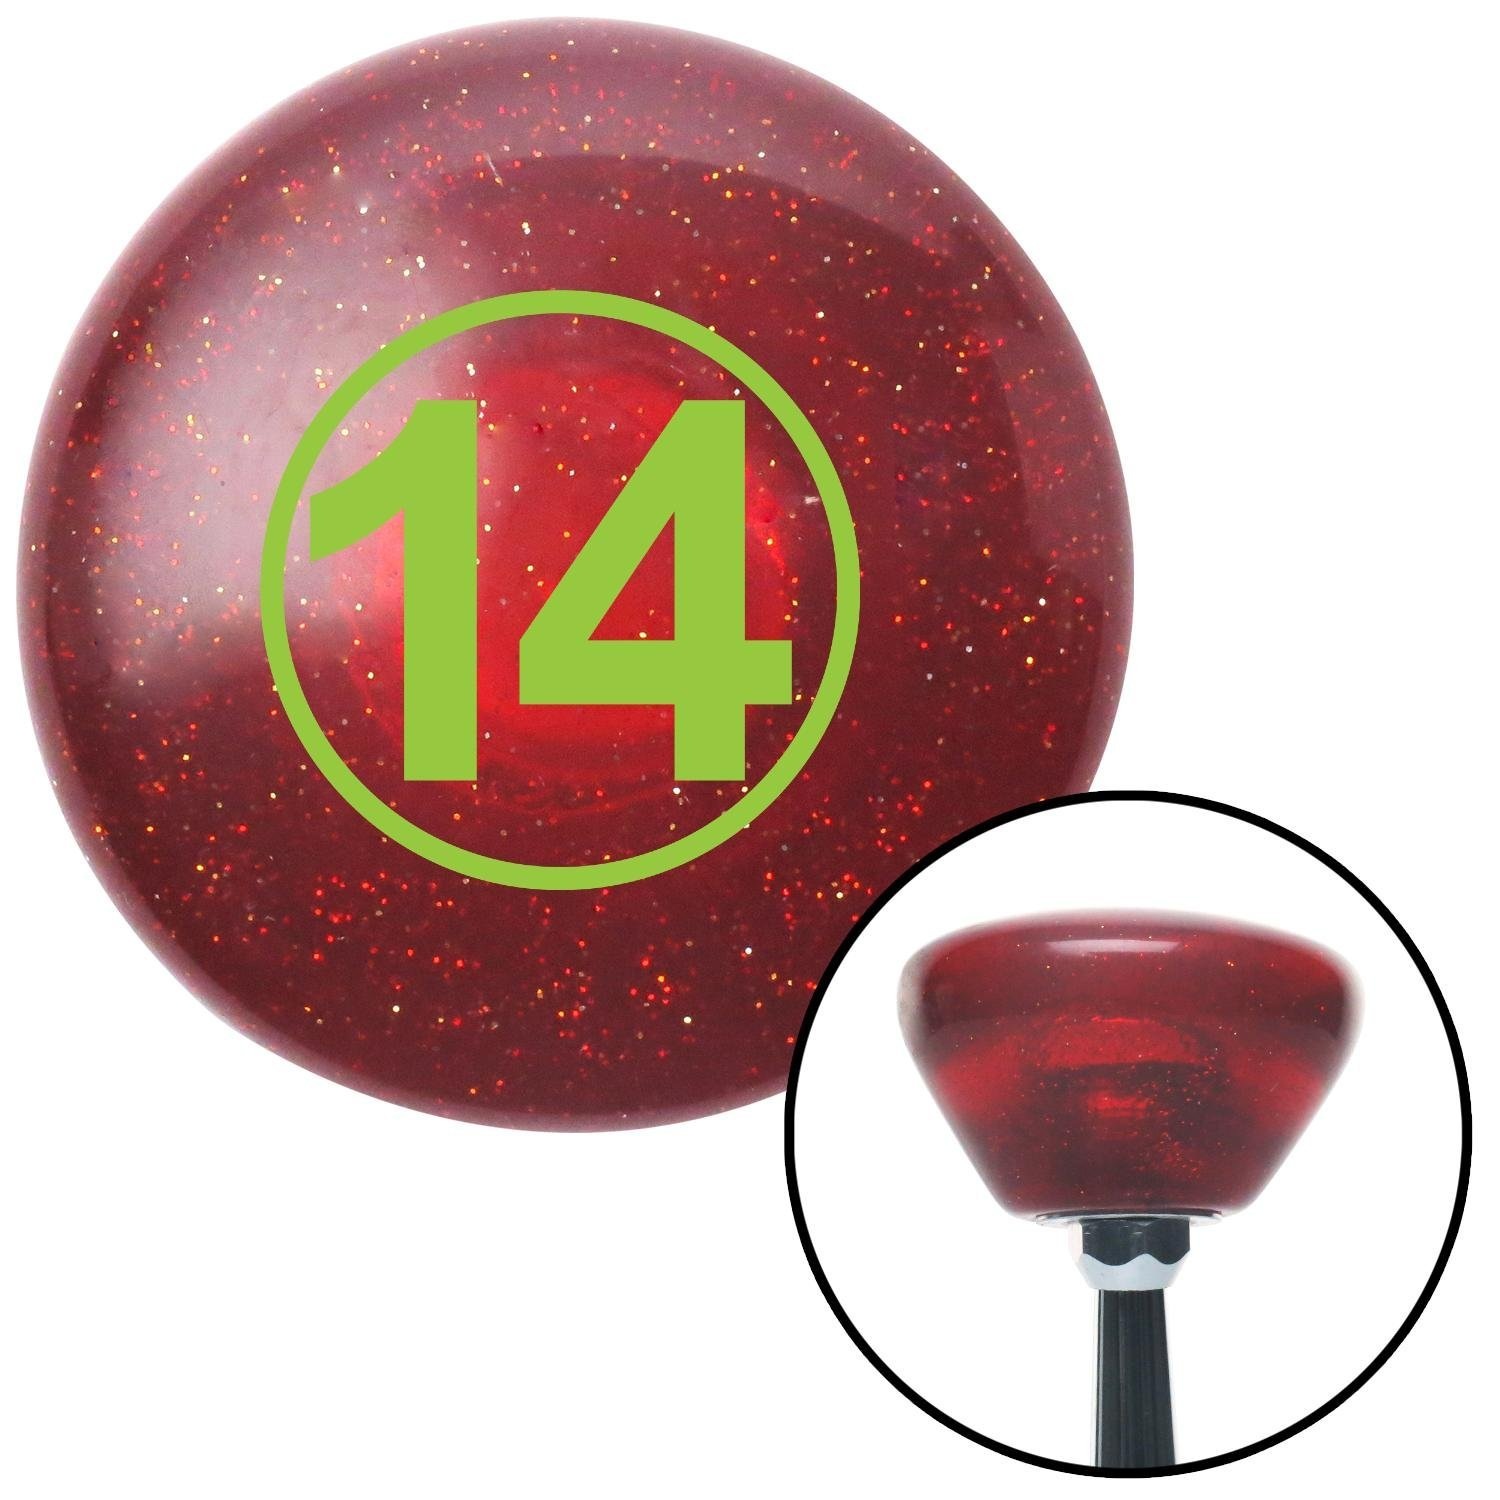 American Shifter 193614 Red Retro Metal Flake Shift Knob with M16 x 1.5 Insert Green Ball #14